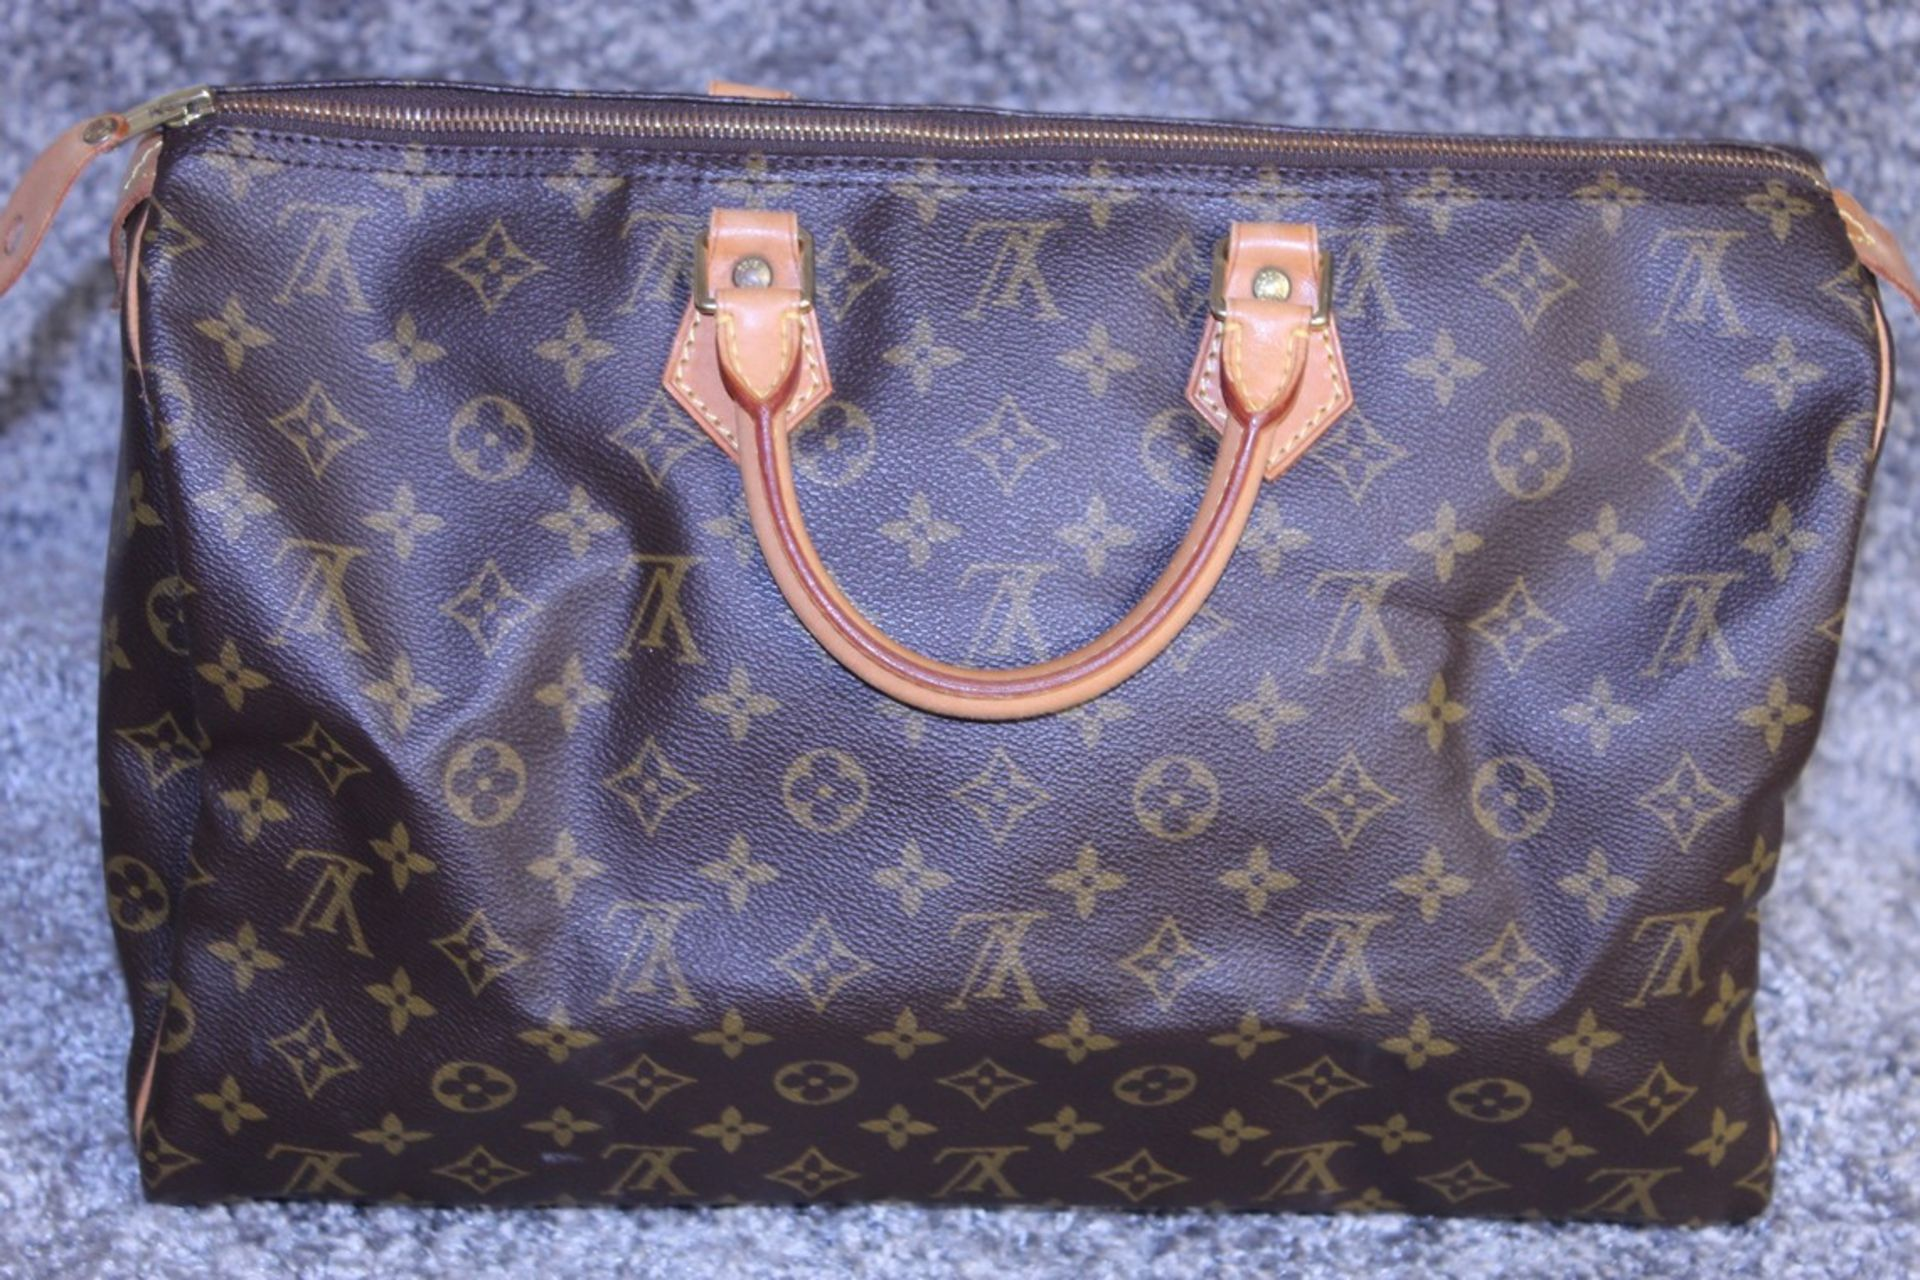 RRP £1,160.00 Made From Classic Monogram Canvas, The Speedy 40 Is A Stylish Handbag For Both - Image 2 of 6